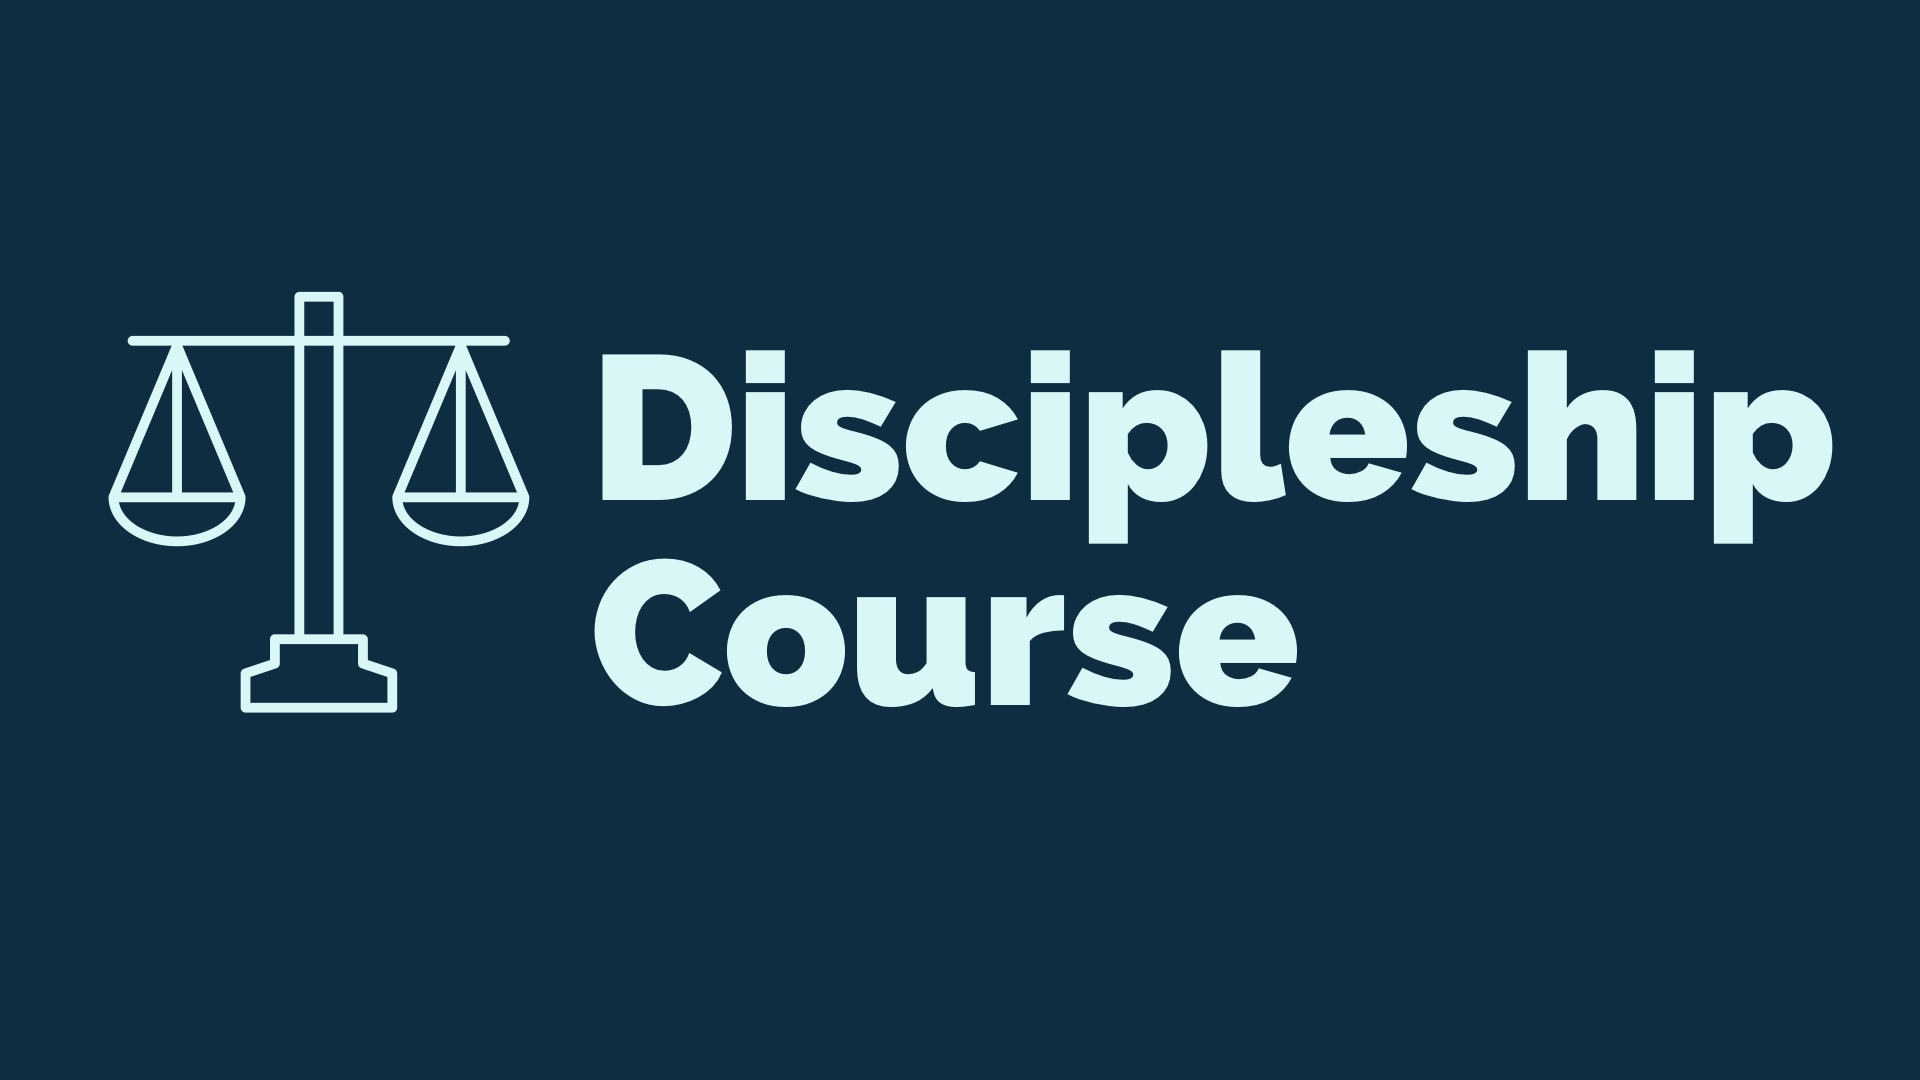 D Course Fall 2020 gathering space plain logo image